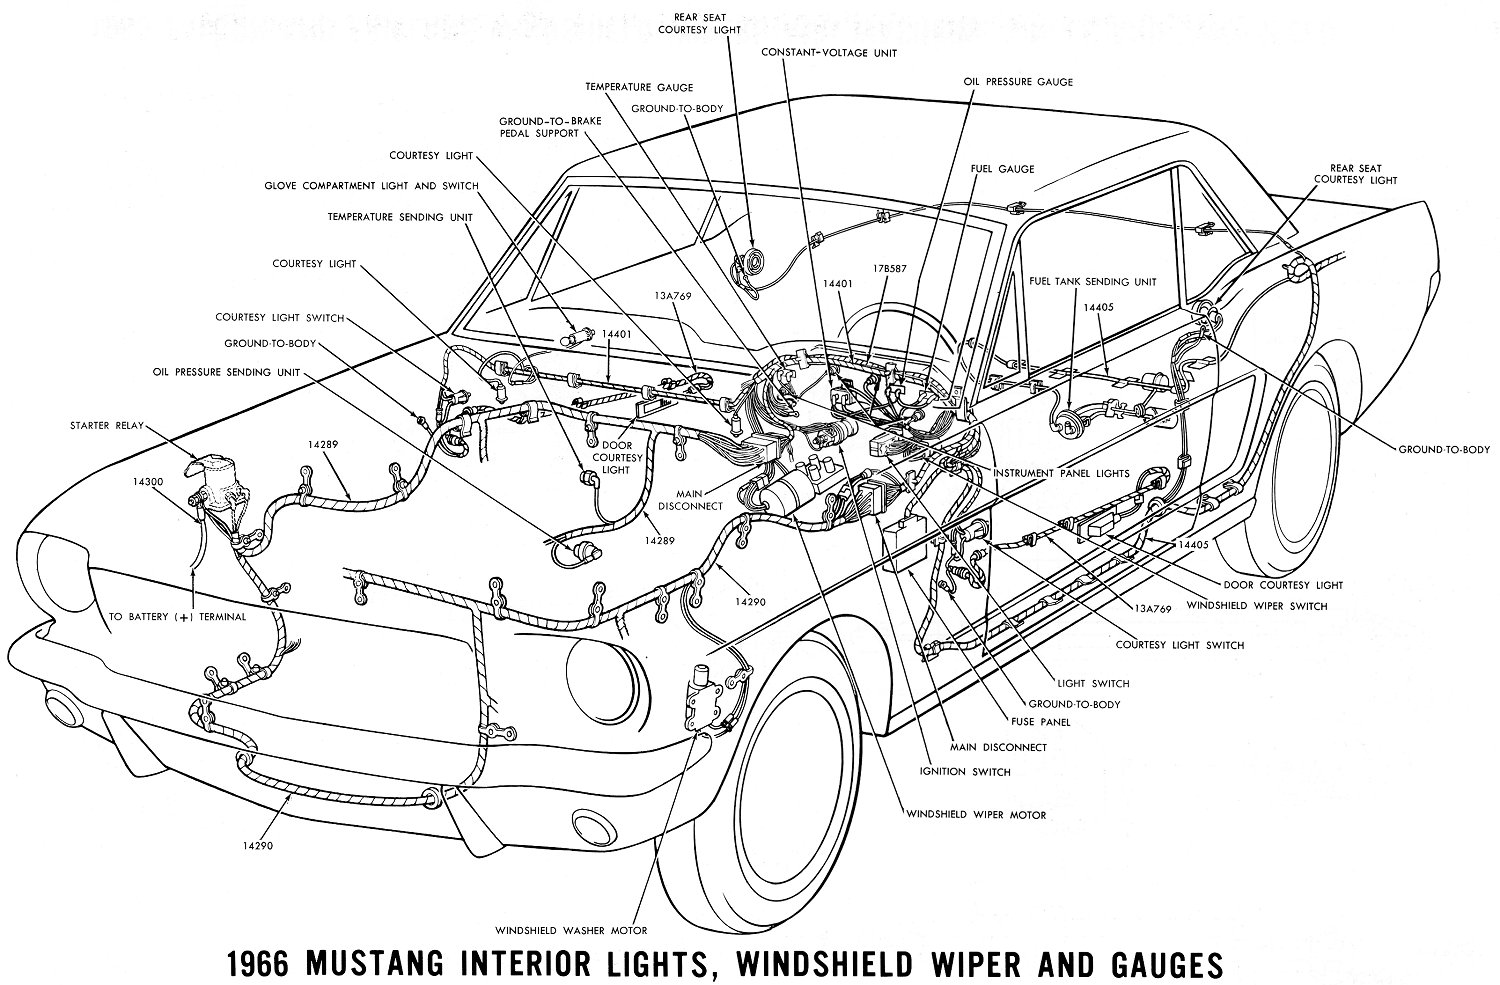 1966 mustang interior lights, windshield wiper and gauges � schematic